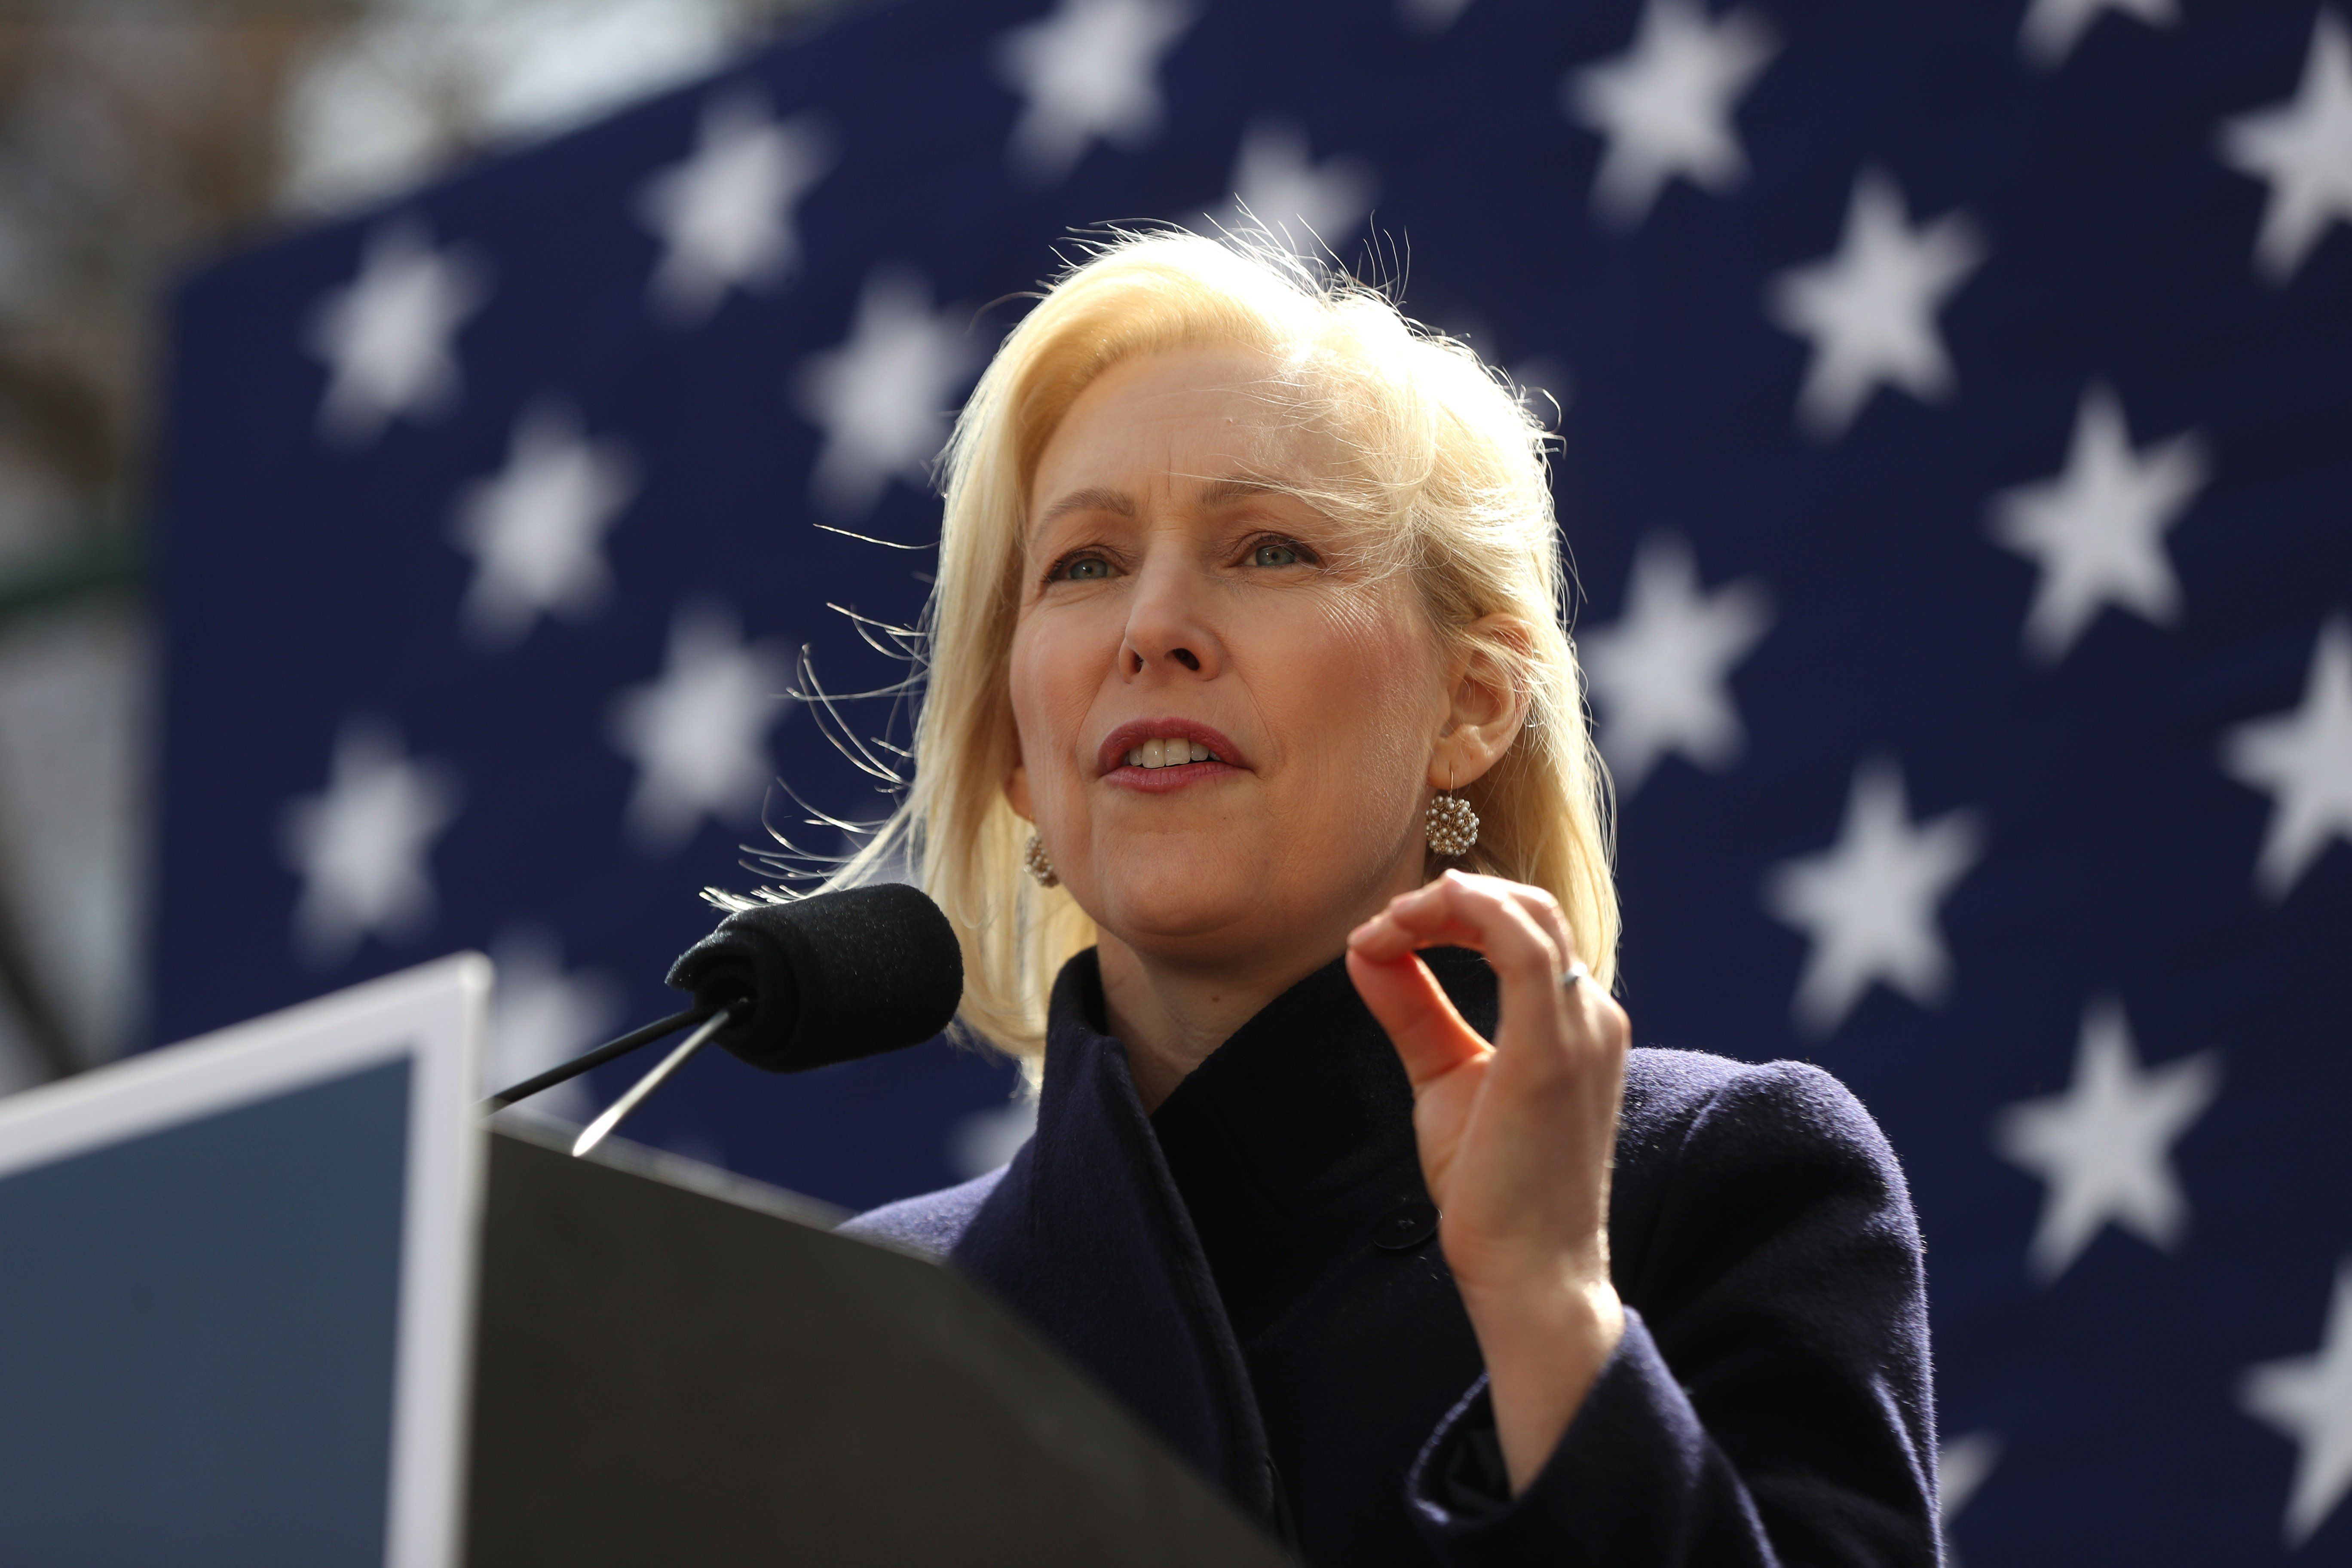 NEW YORK, USA - MARCH 24 :Democratic presidential candidate U.S. Sen. Kirsten Gillibrand speaks during a rally in front of Trump International Hotel in New York, United States on March 22, 2019. (Photo by Atilgan Ozdil/Anadolu Agency/Getty Images)